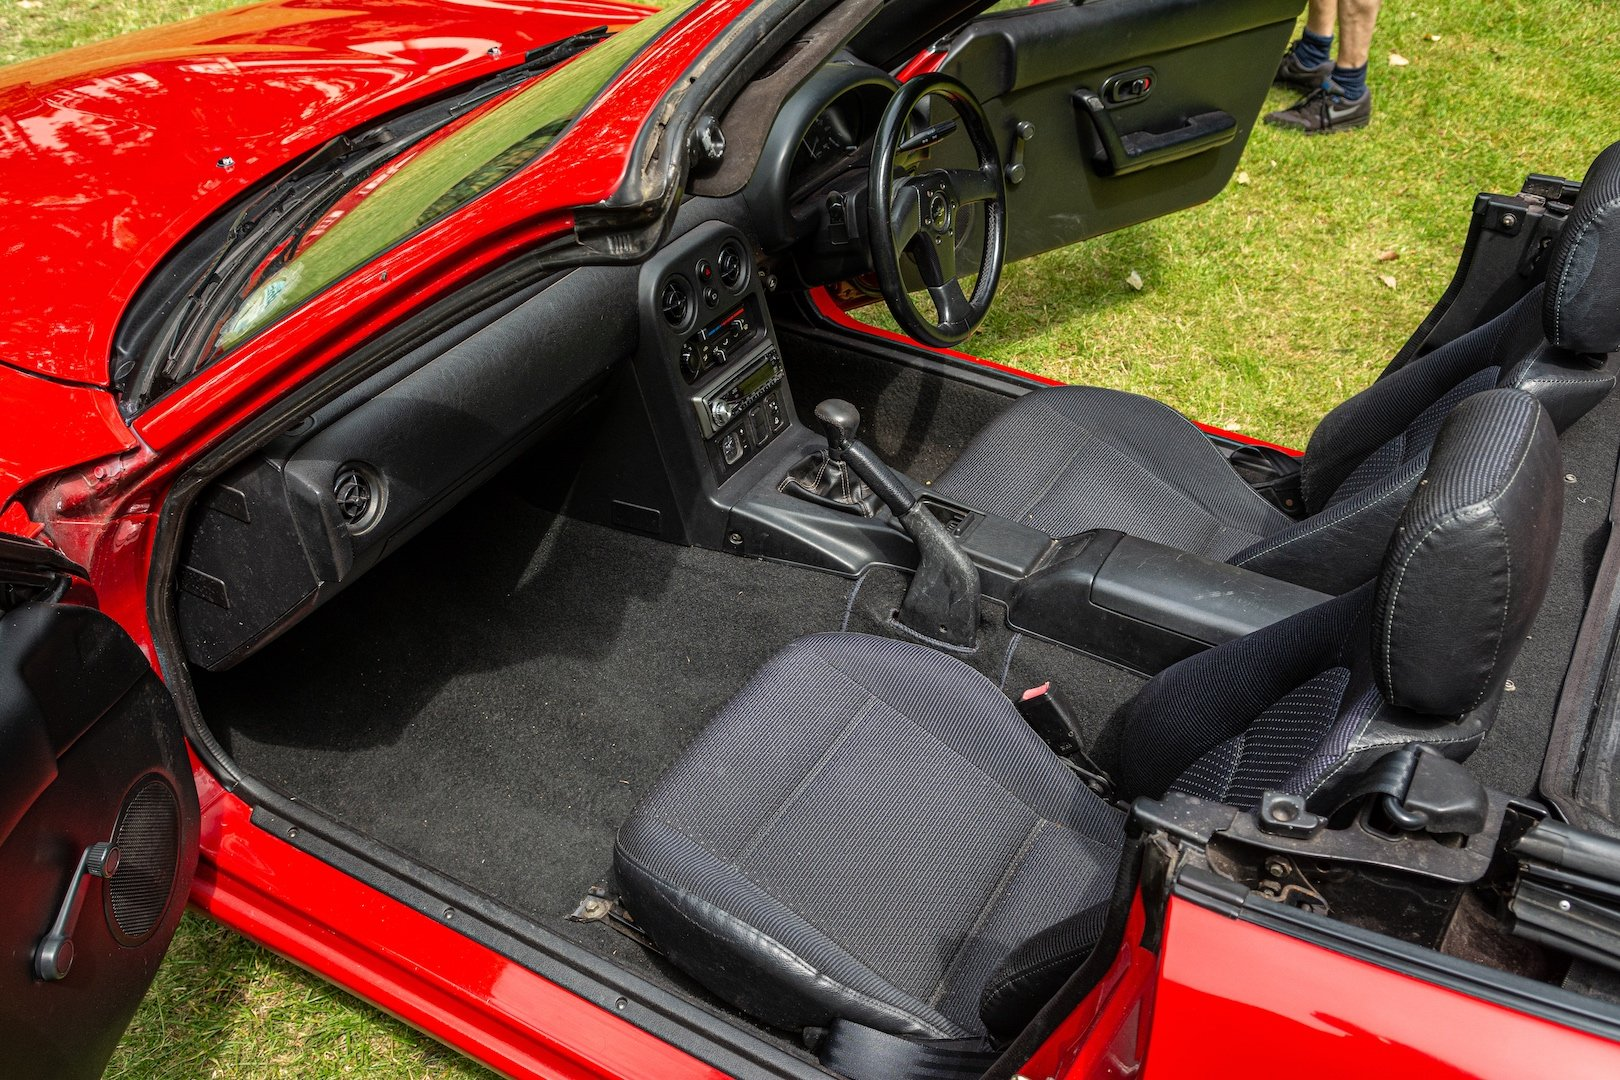 1996 Newly-restored Mazda MX5 Mk 1, low mileage for age For Sale (picture 4 of 6)